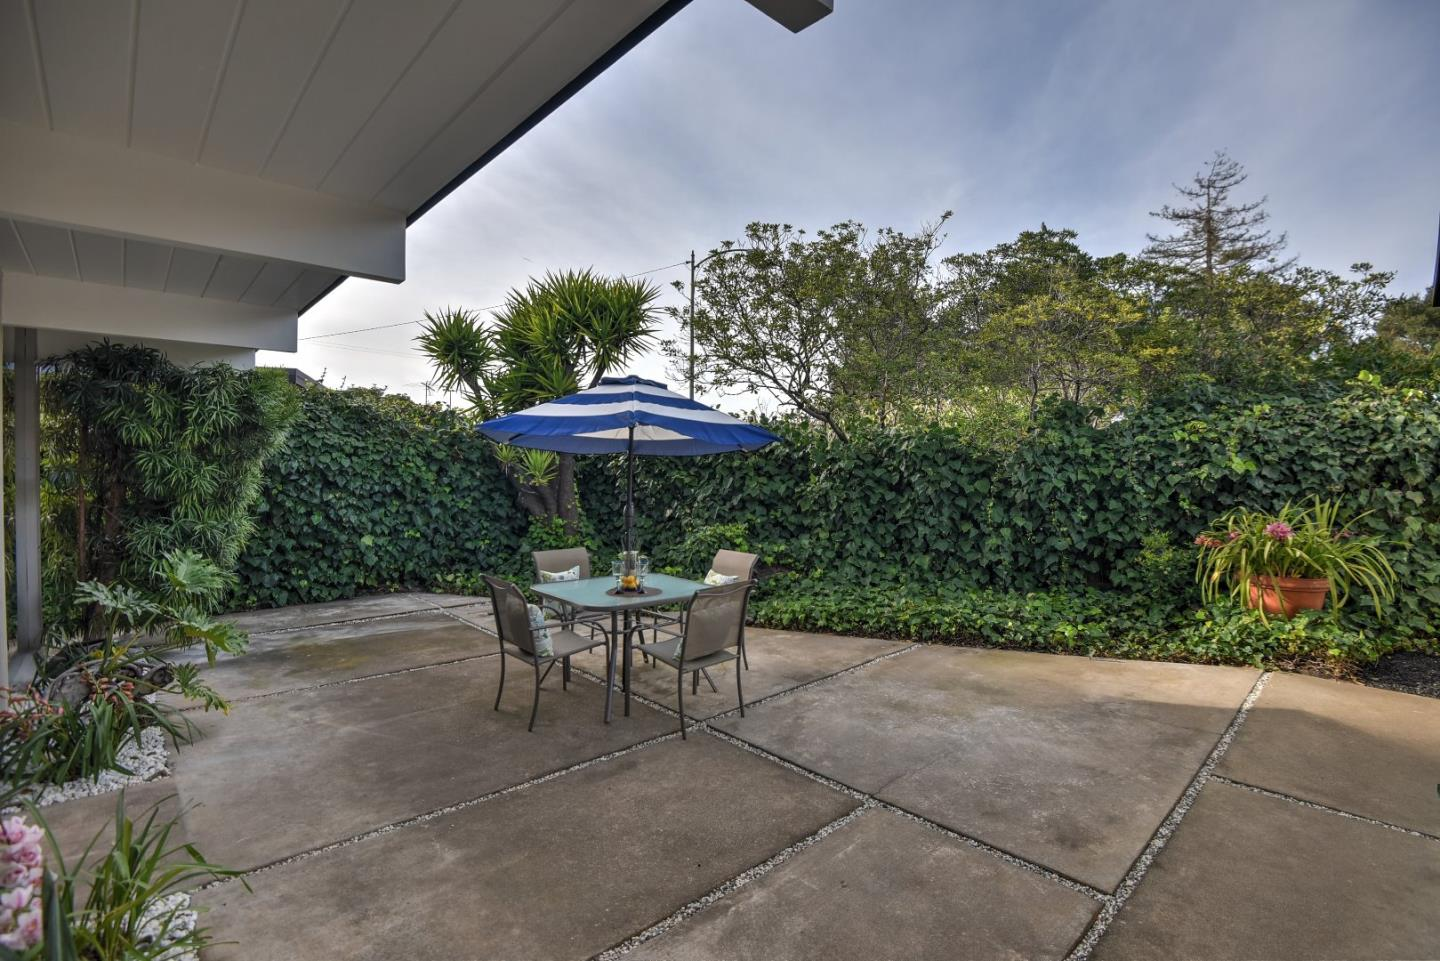 Additional photo for property listing at 1022 La Salle Dr  SUNNYVALE, CALIFORNIA 94087